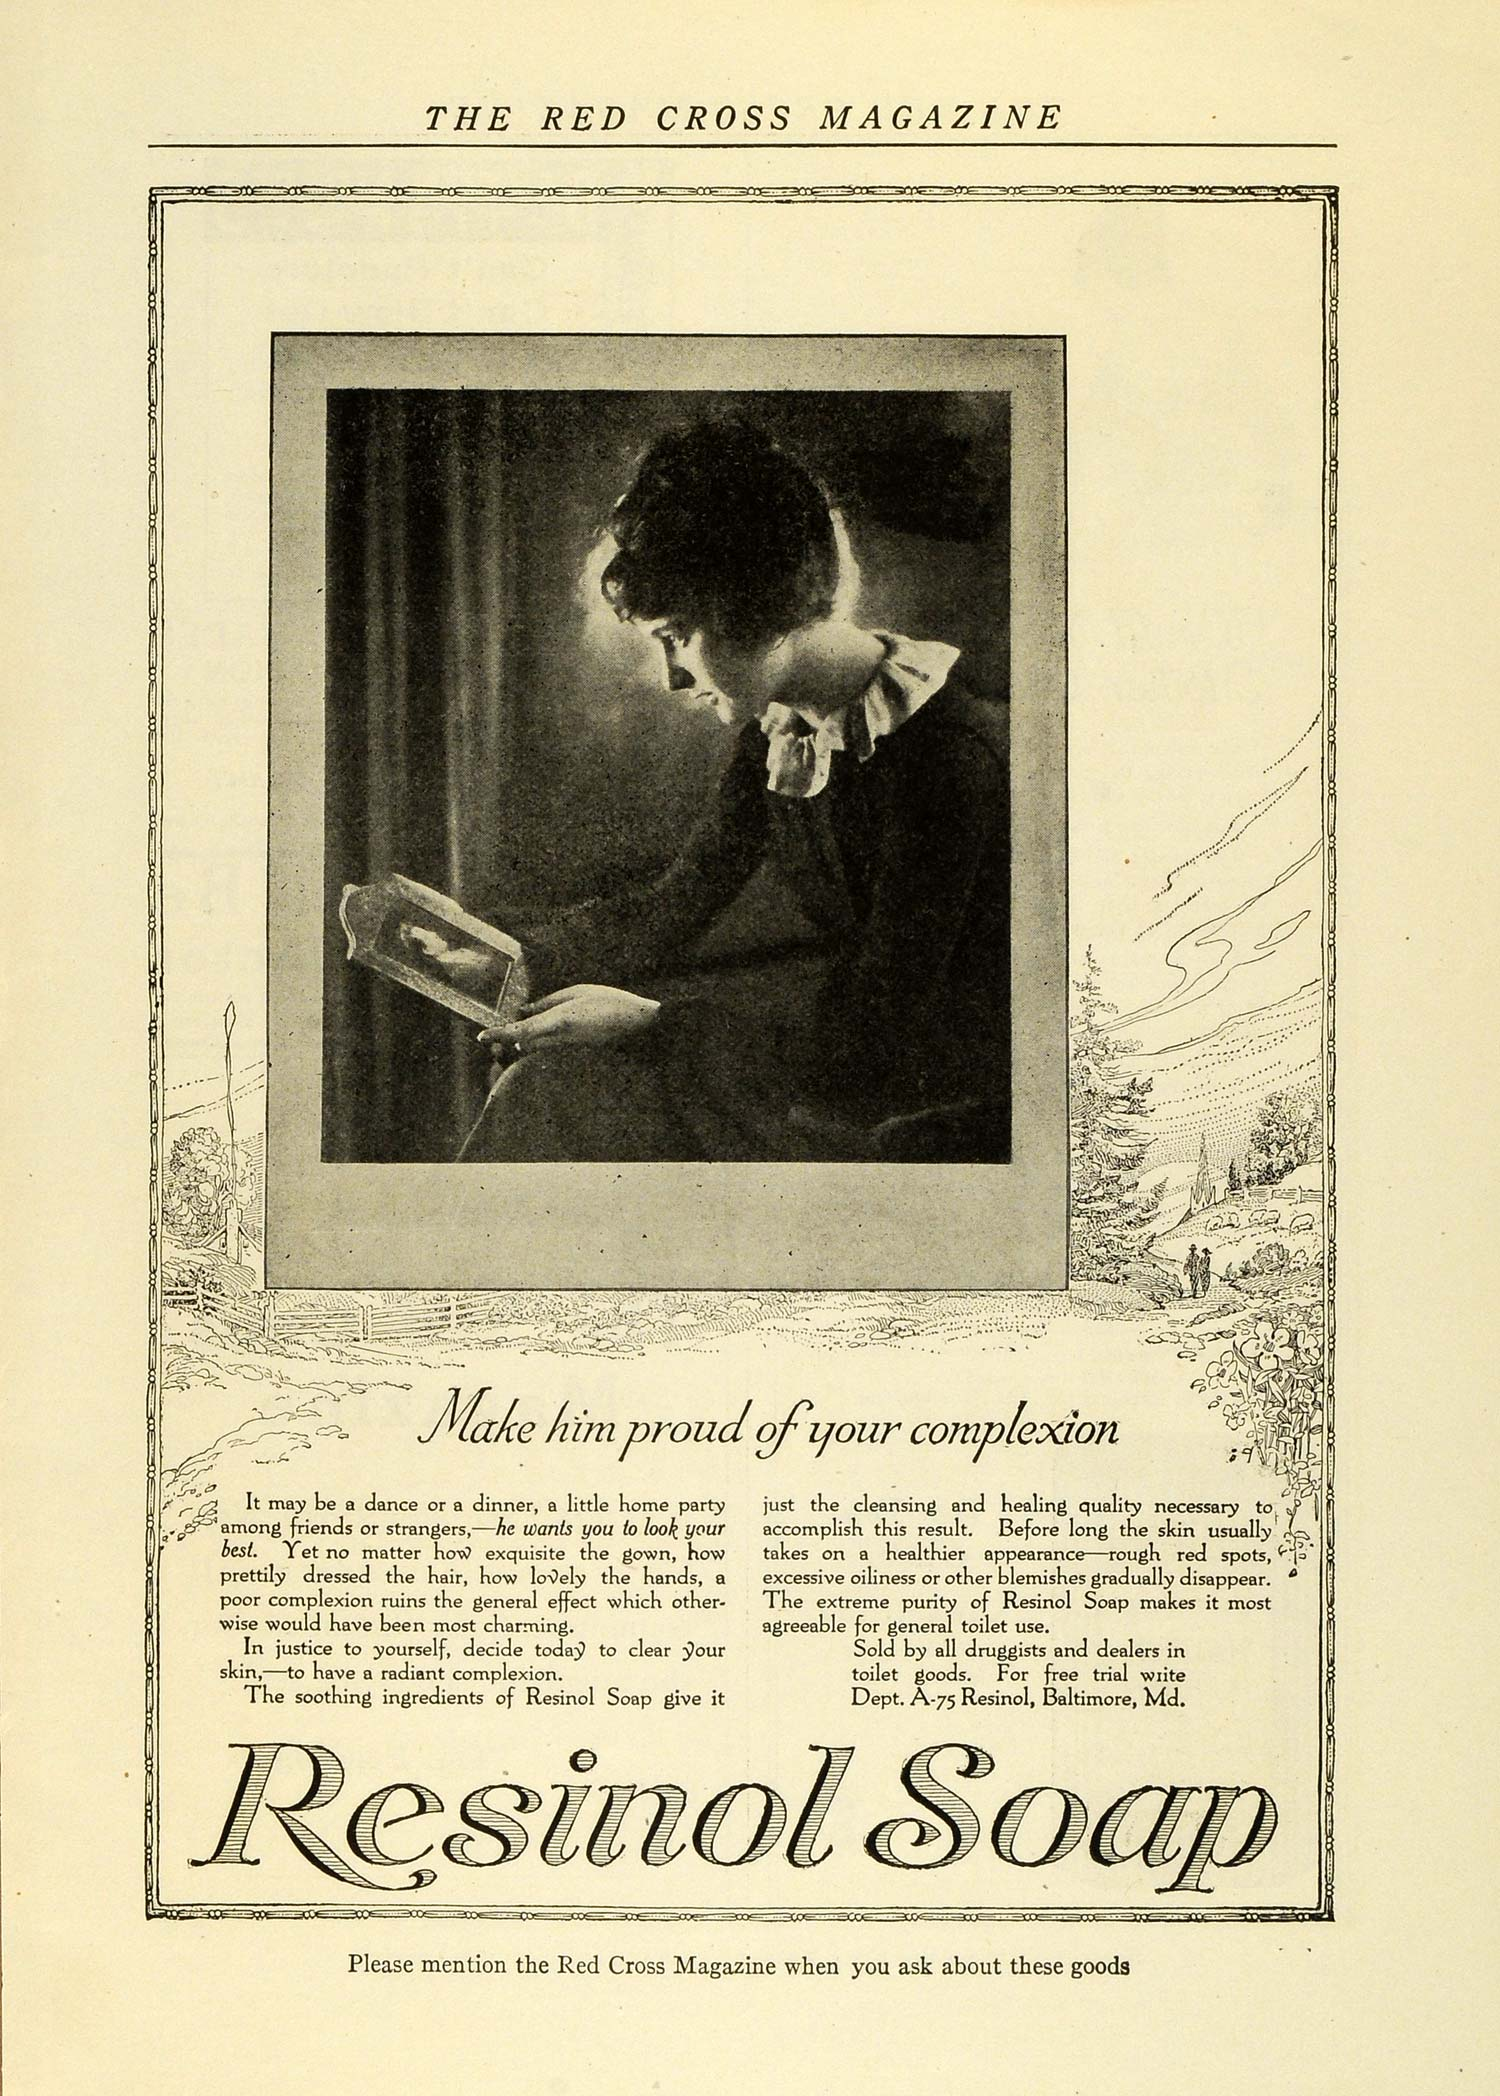 1919 Ad Resinol Soap Women Make Him Proud of Your Complexion Face Druggists RCM1